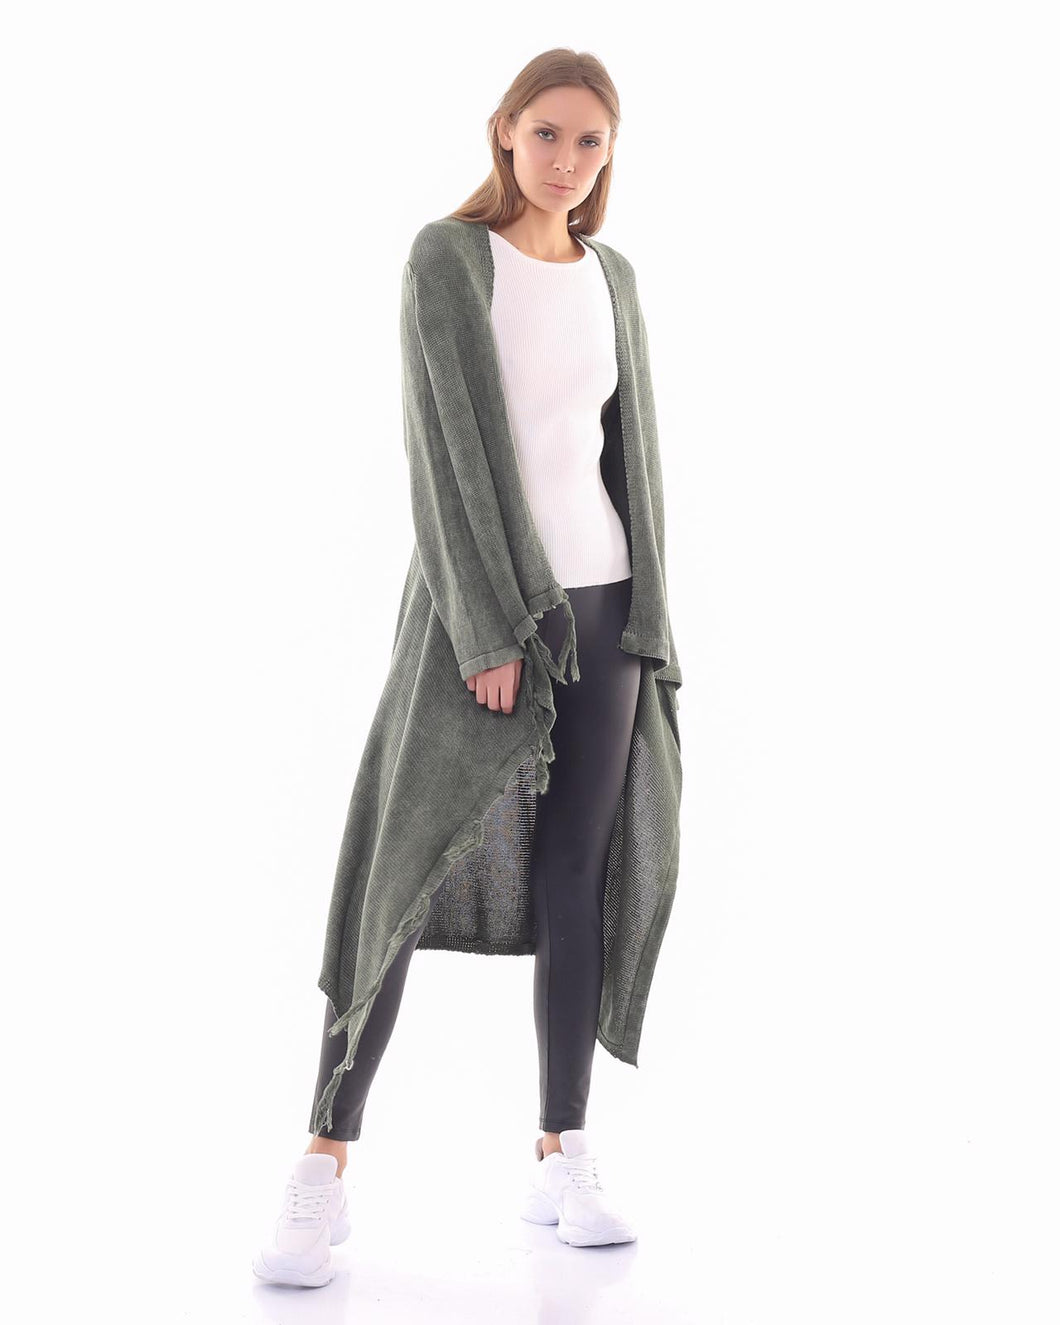 BOHEMIAN FASHIONS Duster Cardigan - Olive green